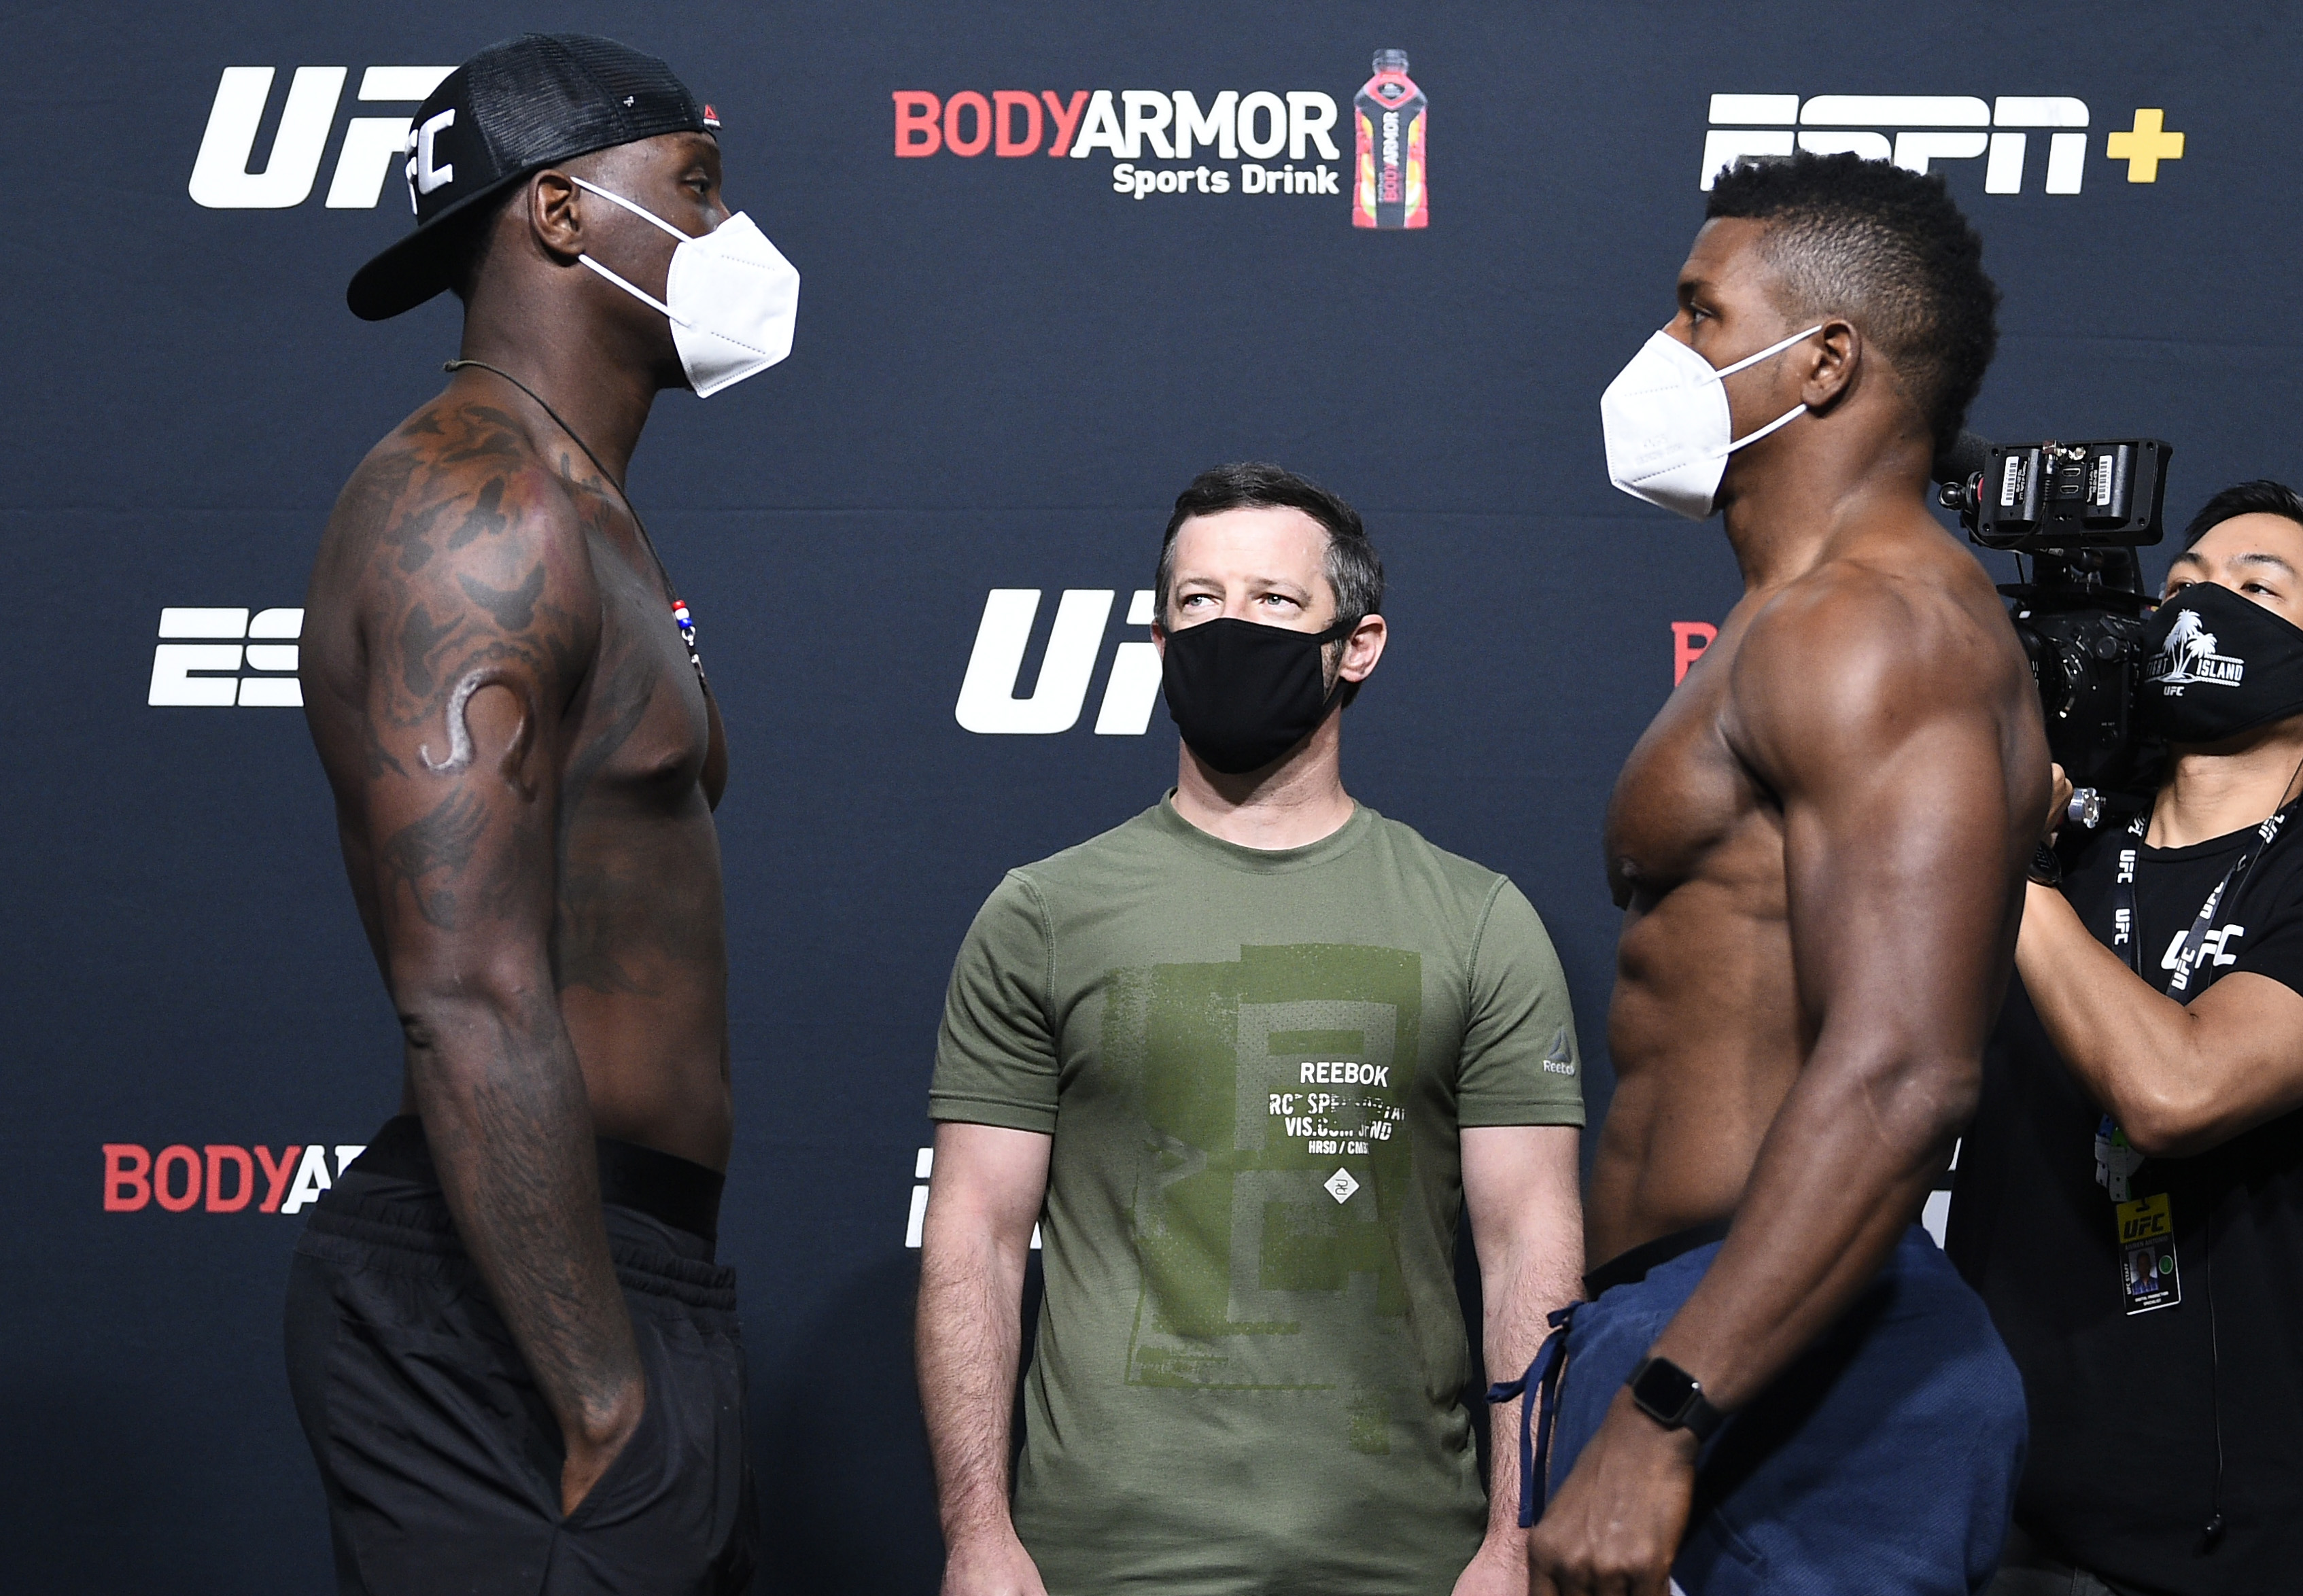 Opponents Ovince Saint Preux and Alonzo Menifield face off during the UFC Fight Night weigh-in at UFC APEX on August 21, 2020 in Las Vegas, Nevada. (Photo by Chris Unger/Zuffa LLC via Getty Images)